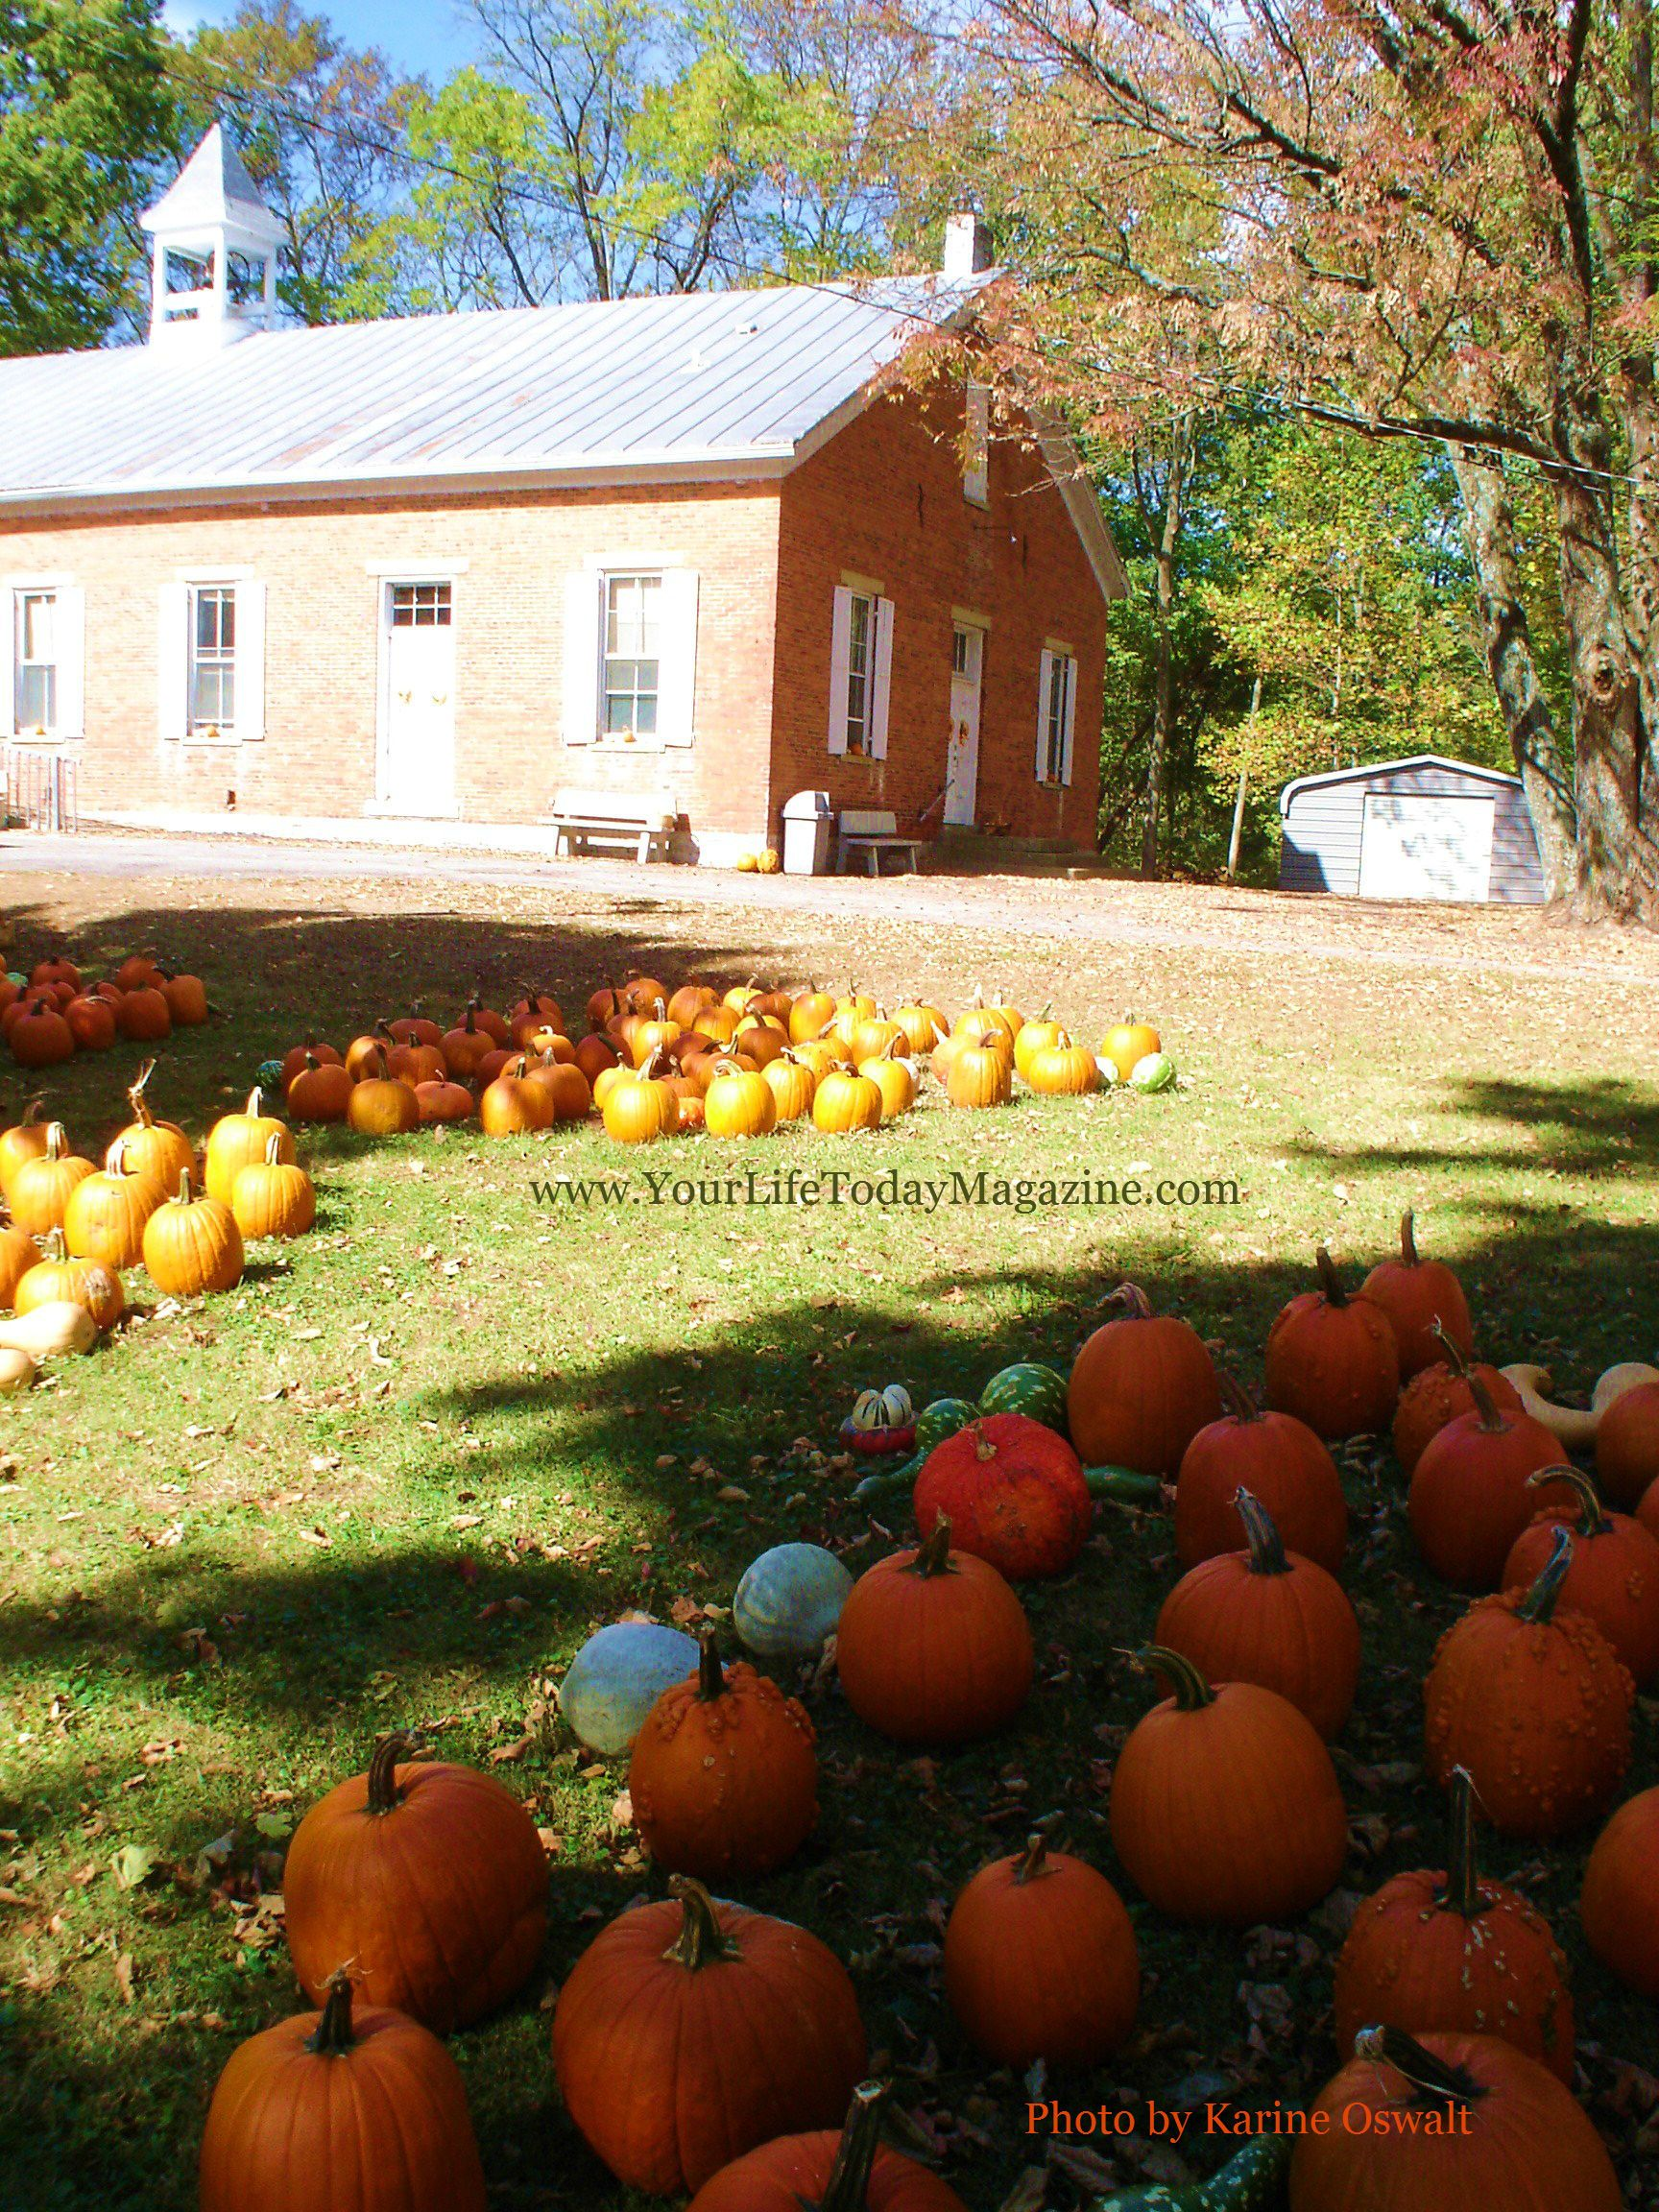 Pumpkins by New Garden Meeting House, Fountain City, Indiana  www.YourLifeTodayMagazine.com